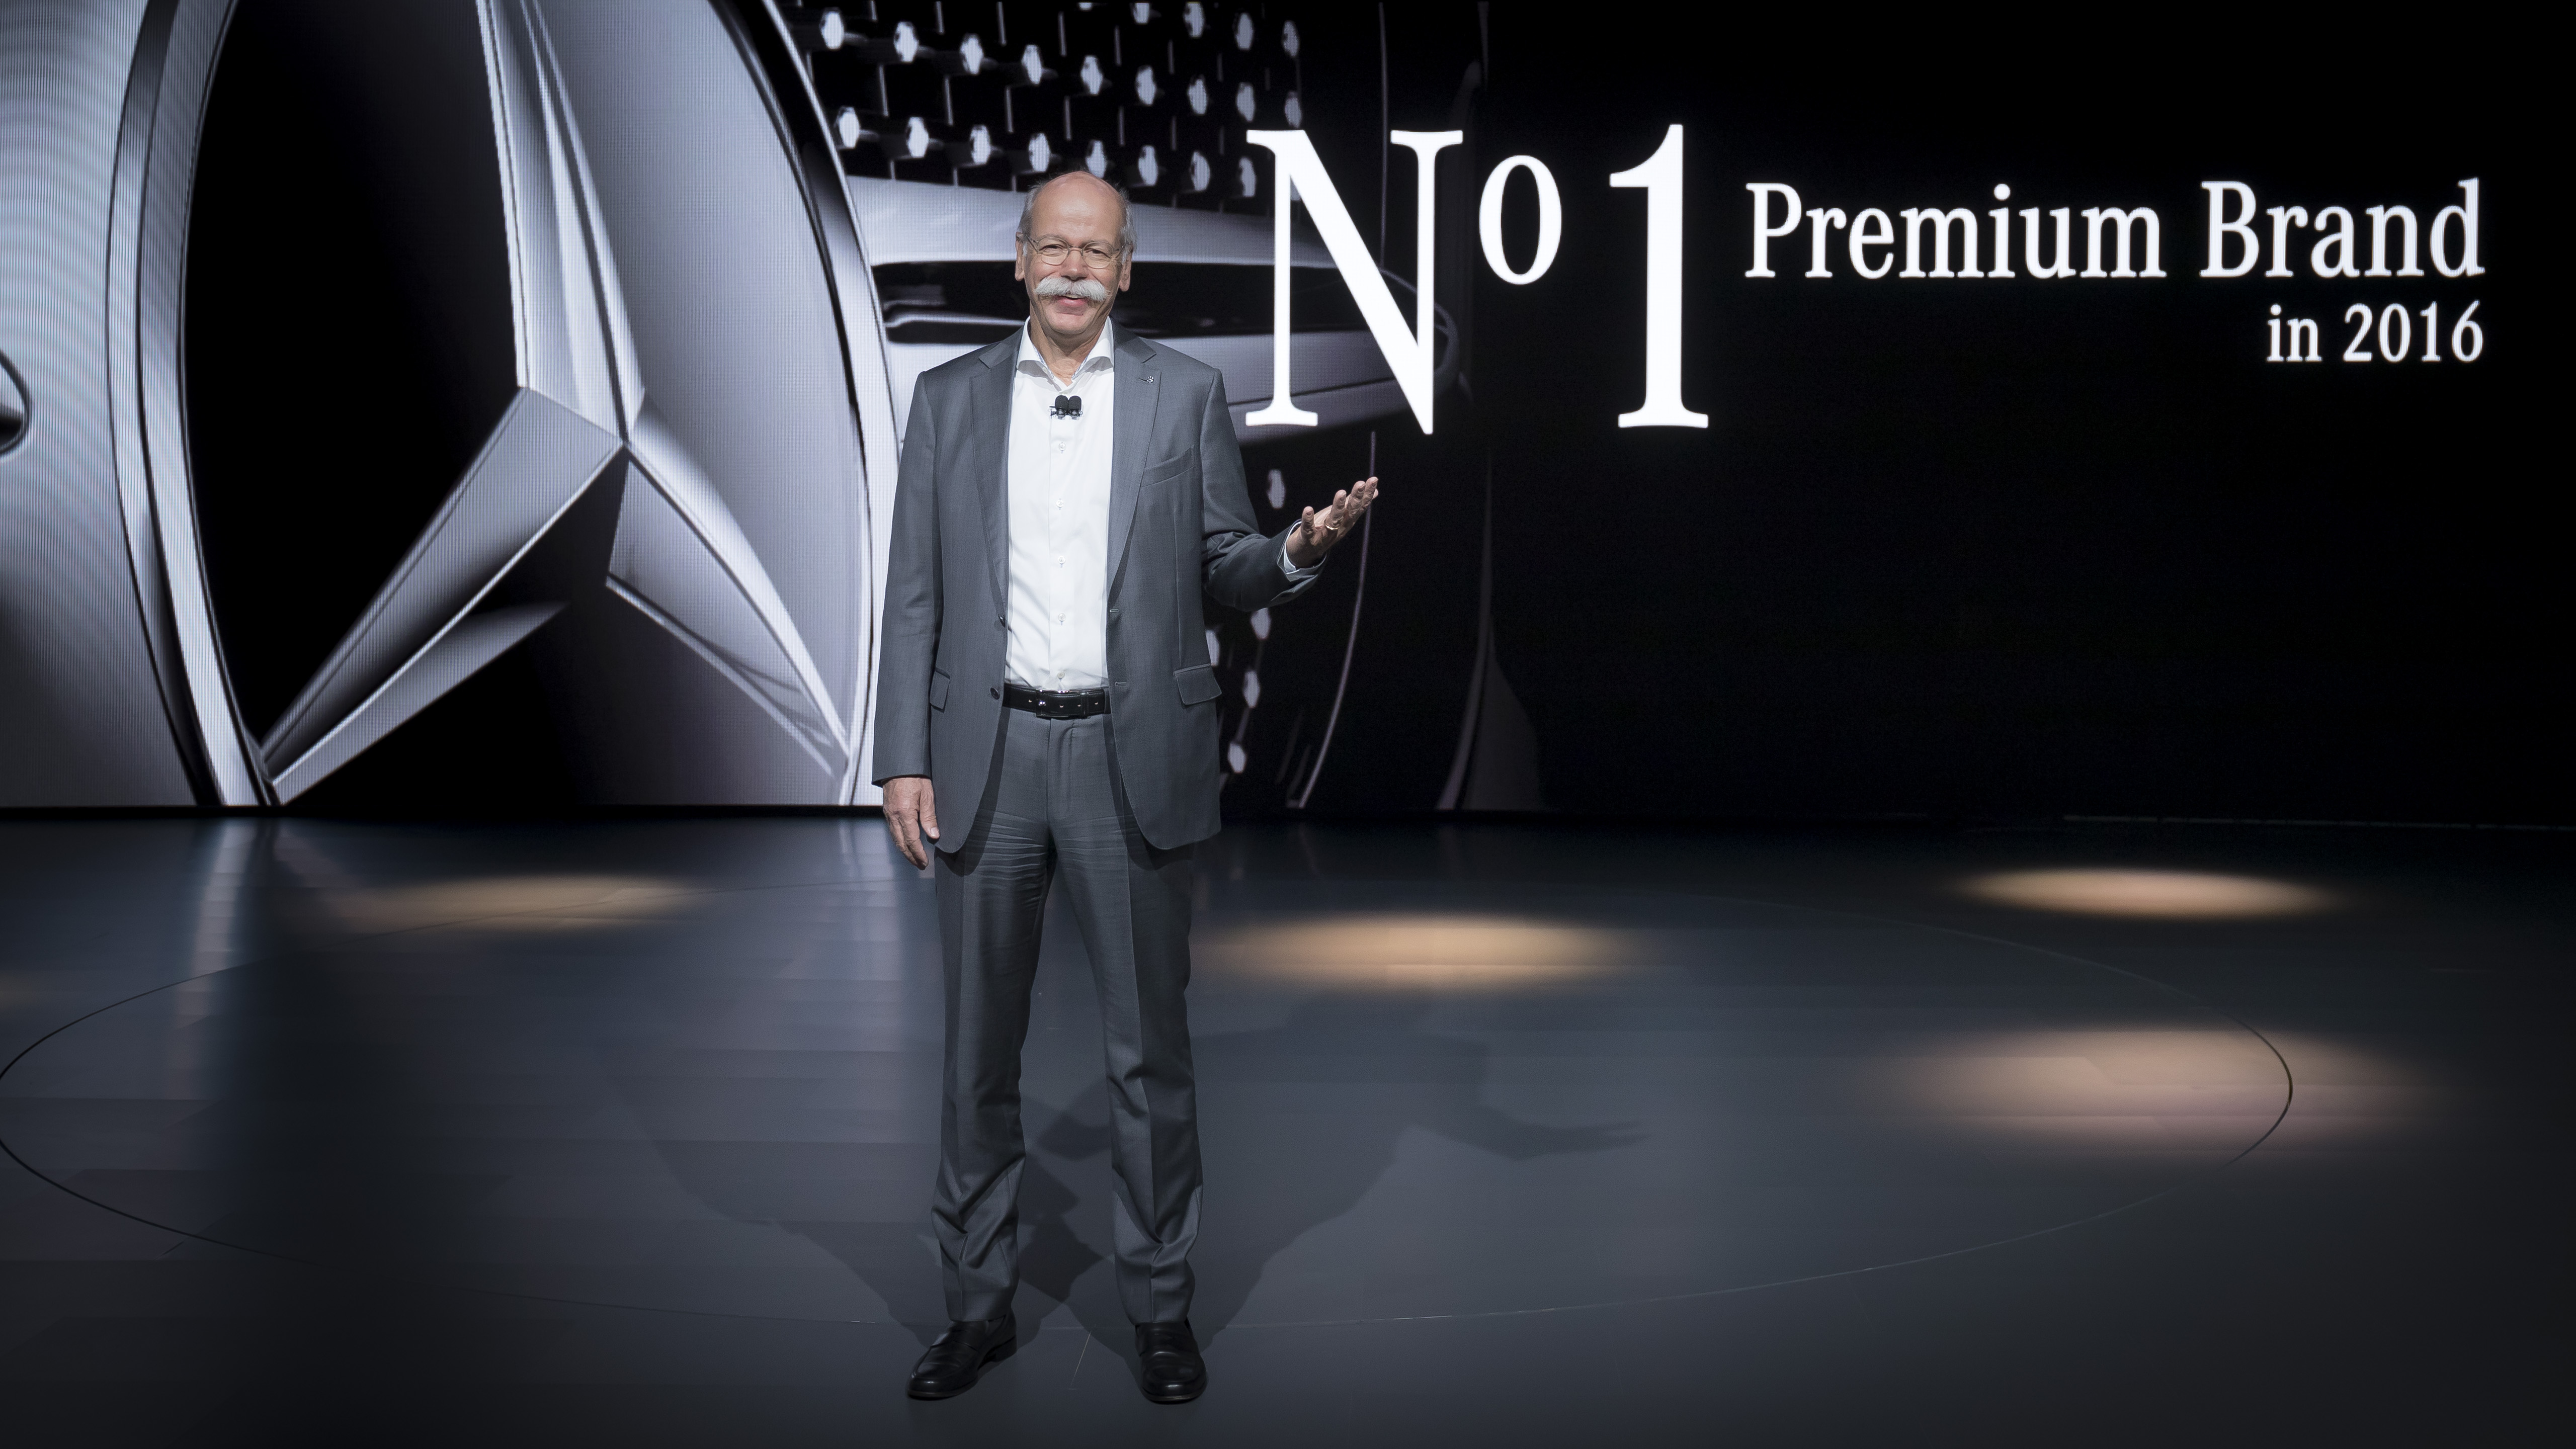 Dr. Dieter Zetsche, Vorstandsvorsitzender der Daimler AG und Leiter Mercedes-Benz Cars auf der North American International Auto Show in Detroit.Dr. Dieter Zetsche, Chairman of the Board of Management of Daimler AG and Head of Mercedes-Benz Cars at the No